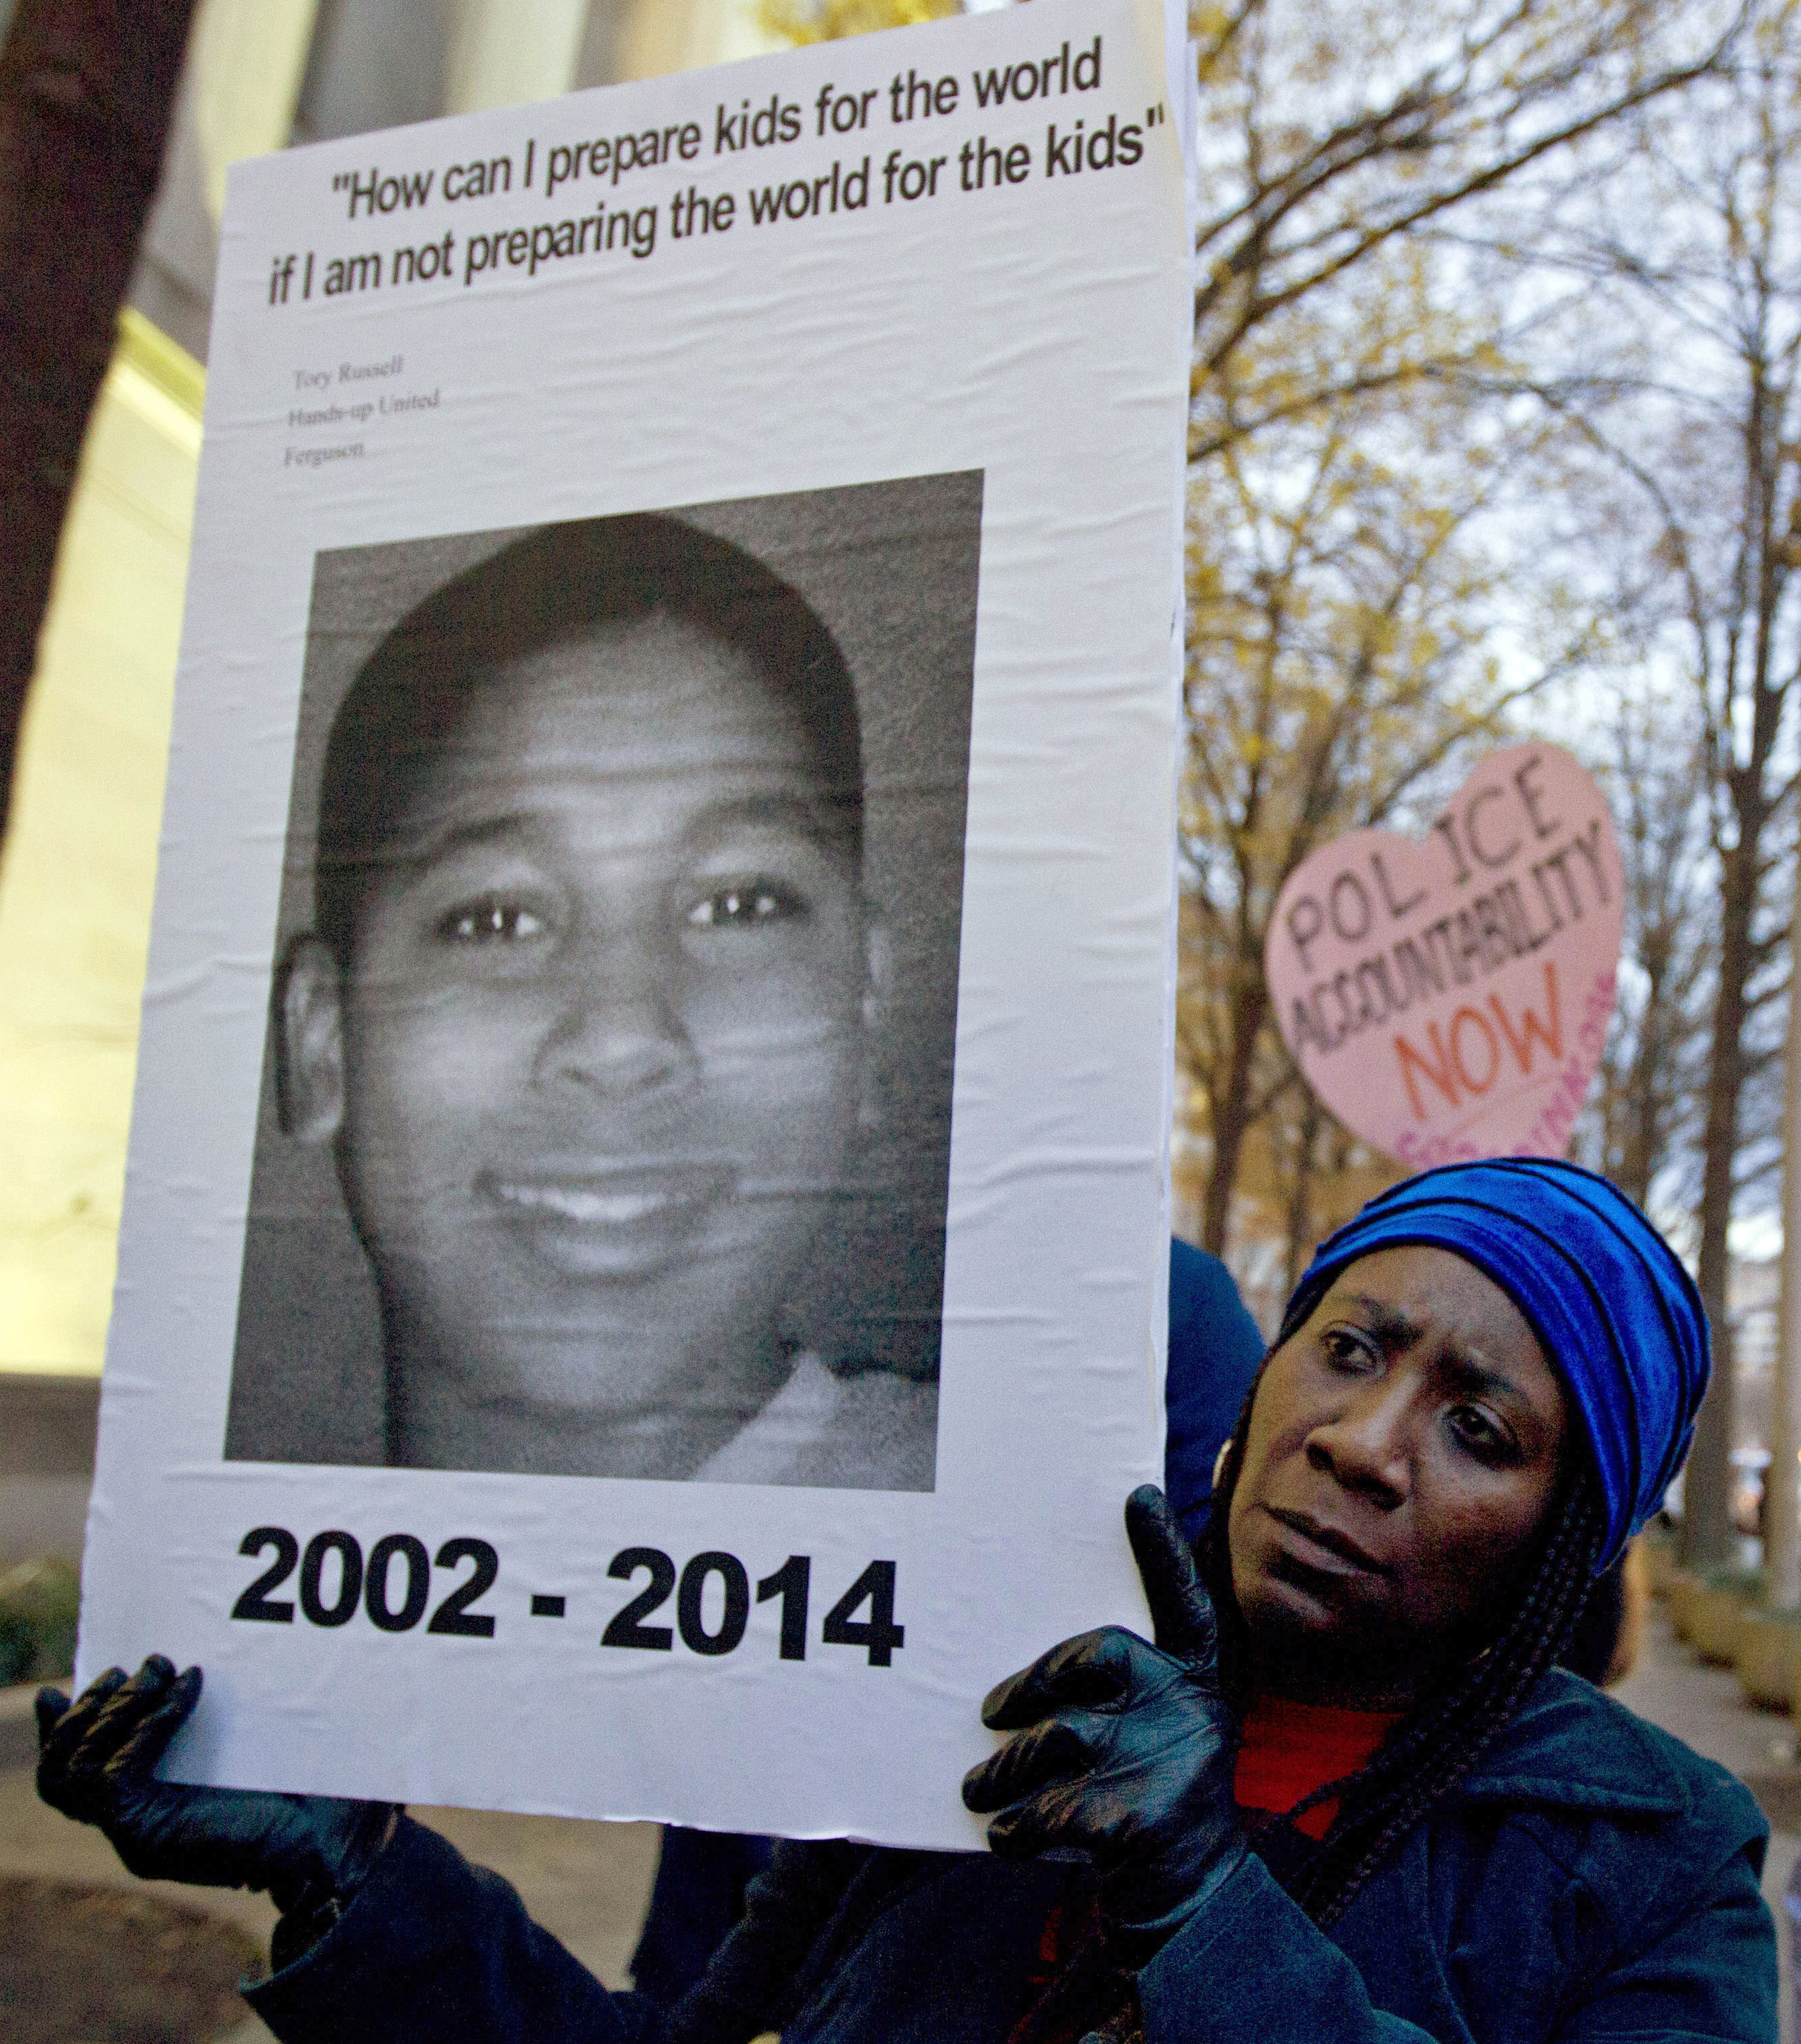 In this Dec. 1, 2014, file photo, Tomiko Shine holds up a picture of Tamir Rice, a 12-year-old boy fatally shot Nov. 22, 2014, by a rookie police officer in Cleveland, Ohio, during a protest in Washington, D.C.